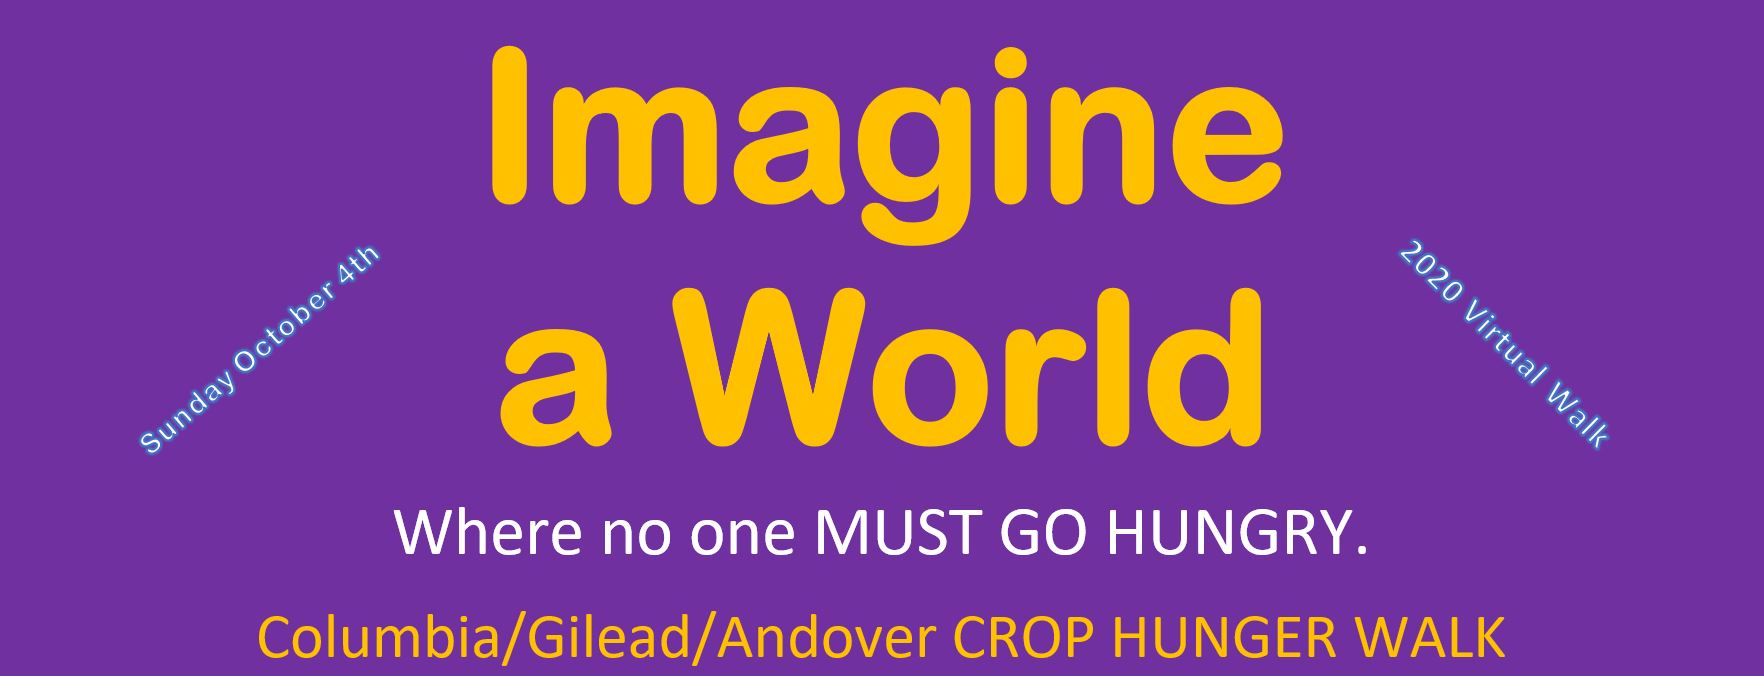 The Walk is virtual, but the need could not be more real! CROP Hunger Walks are happening in a new way! To keep everyone safe and healthy, Walks are going virtual – either walking alone, with immediate family or in small groups walking a safe distance apart.